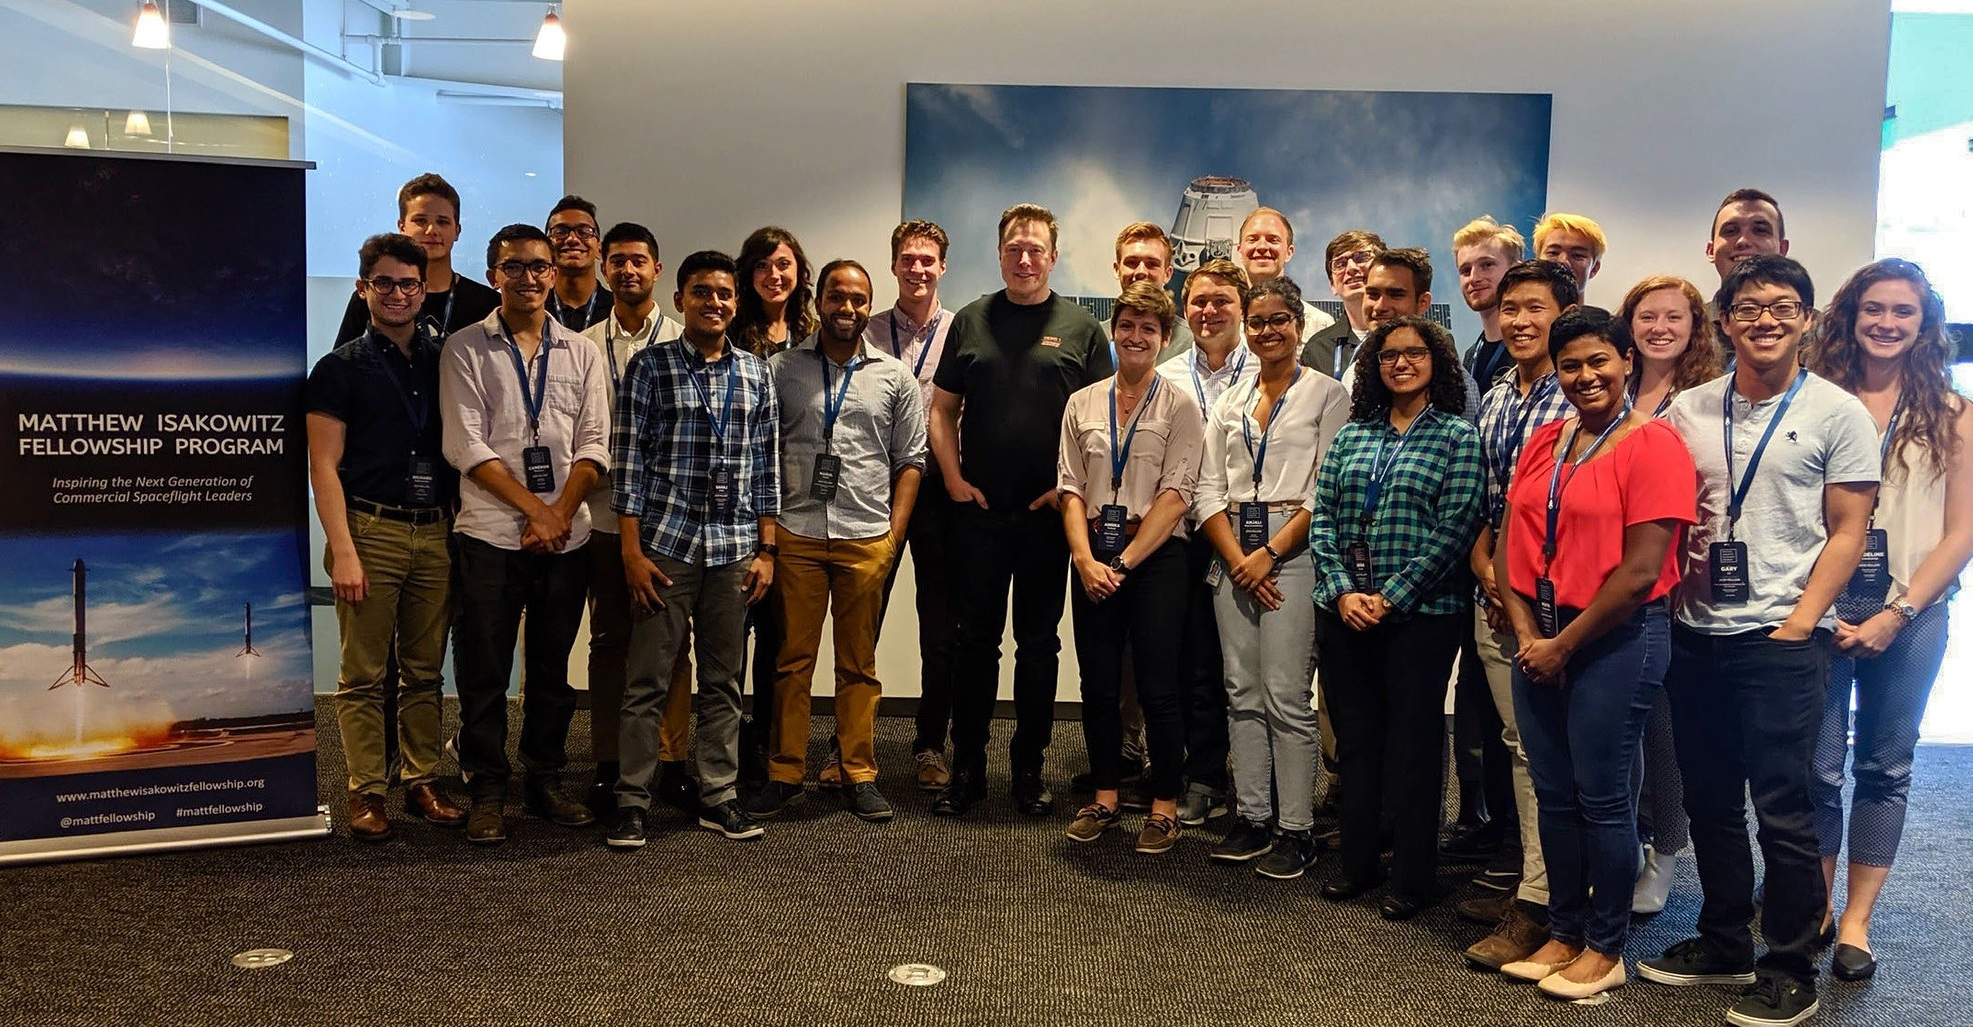 Q&A with Elon Musk (Founder and CEO, SpaceX) and the 2019 Fellows.